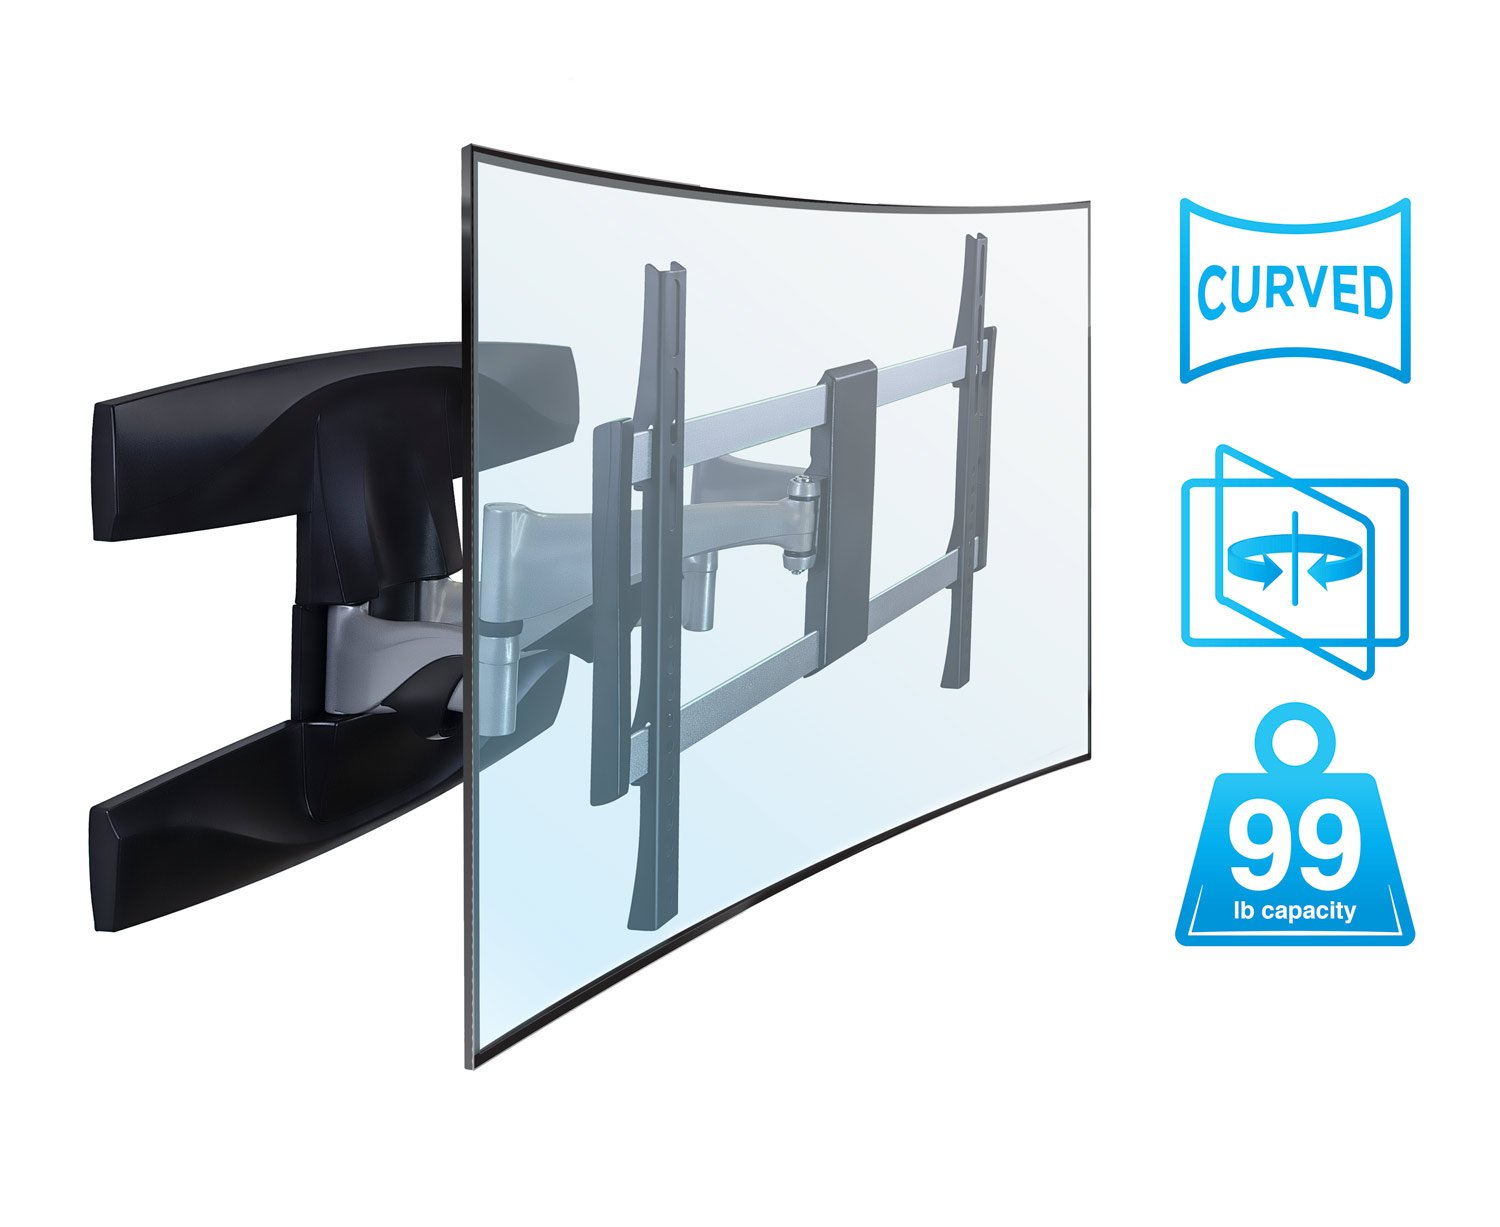 Mount-It! Full Motion Curved TV Wall Mount, Articulating Swivel Tilt Motion for 37'' to 70'' inch LCD LED OLED 4K Flat Panel Screens up to 99 lbs (MI-9464)